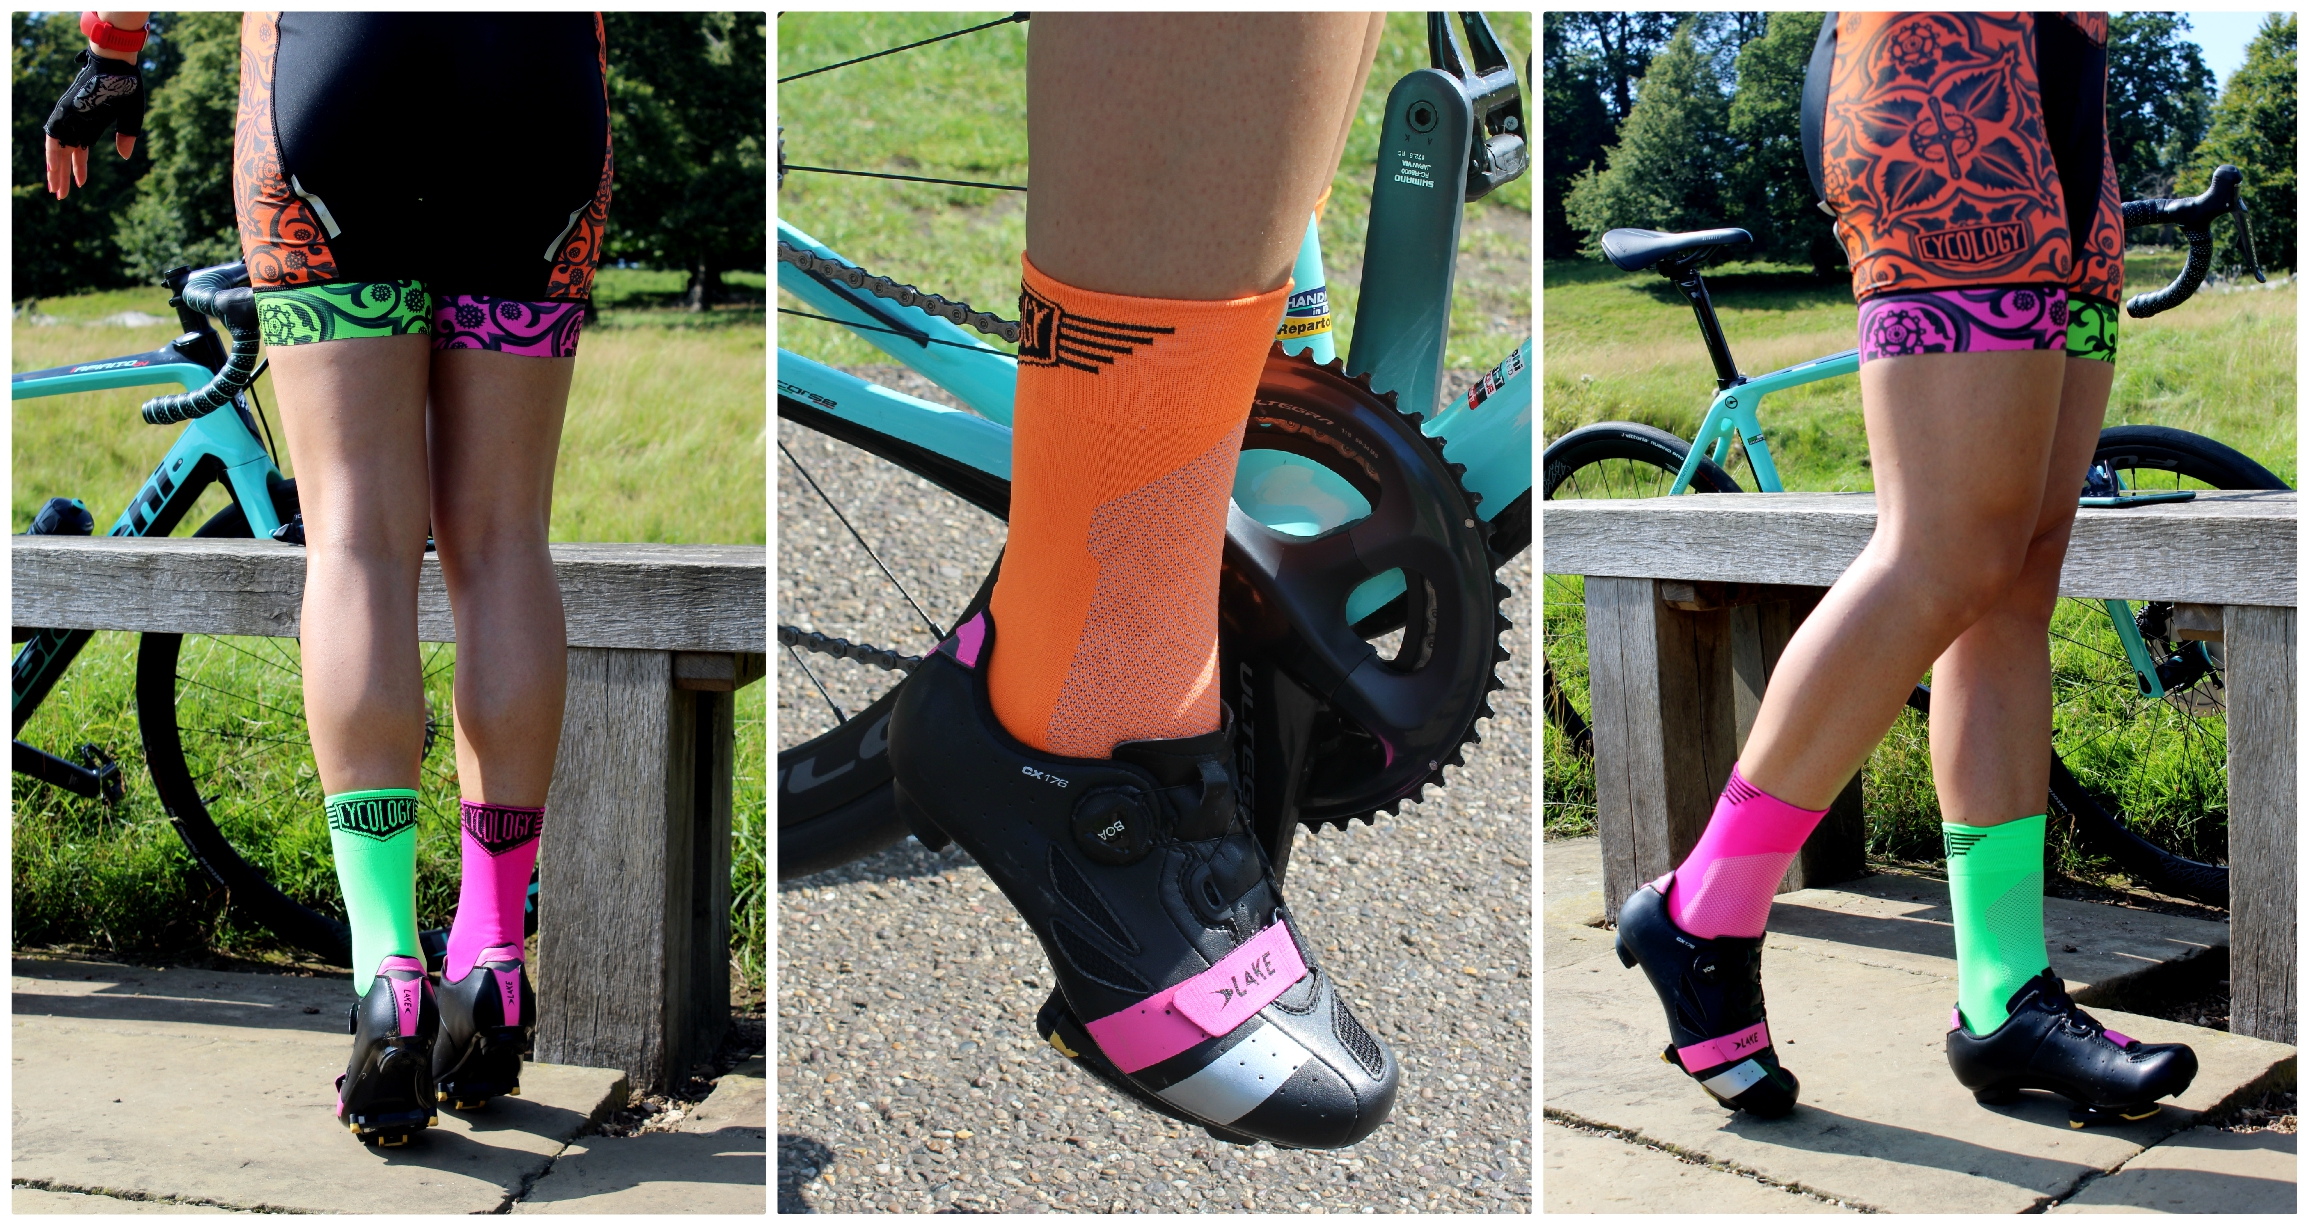 Lake Cycling Shoes and Larisa Chinces